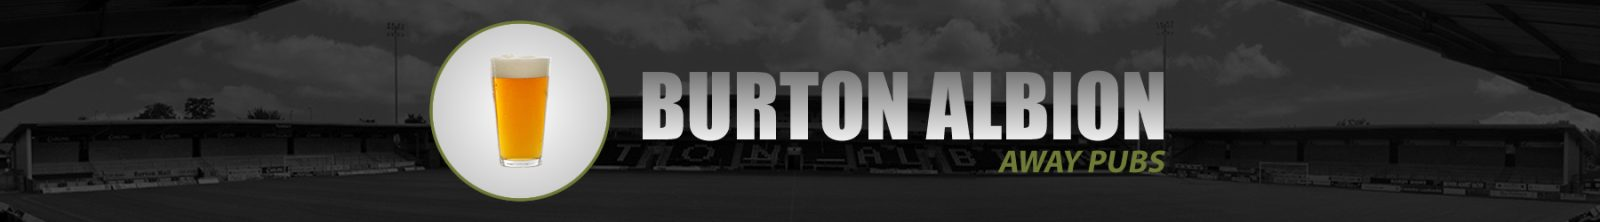 Burton Albion Away Pubs